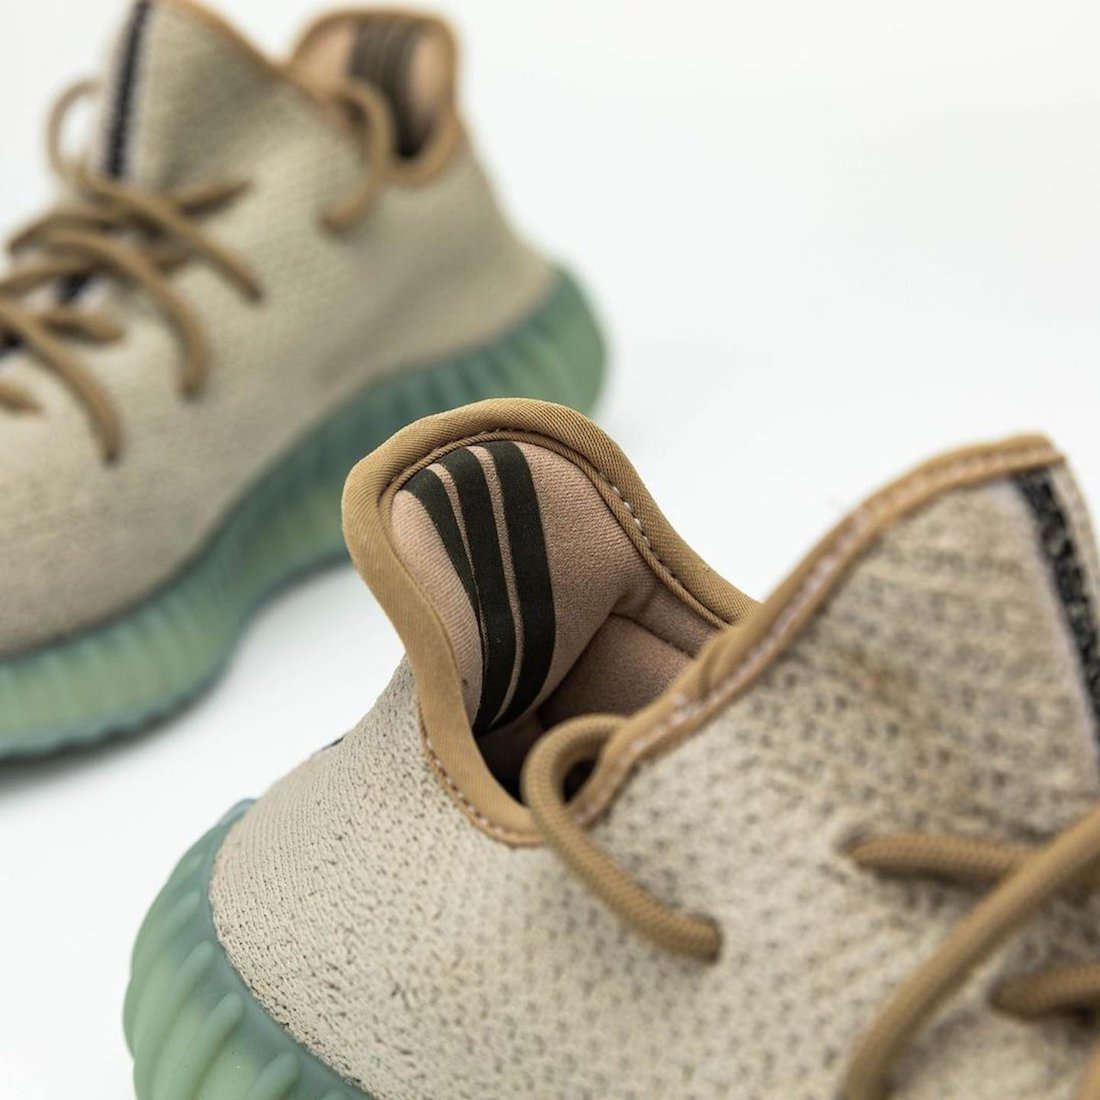 adidas Yeezy Boost 350 V2 Leaf Release Date Info